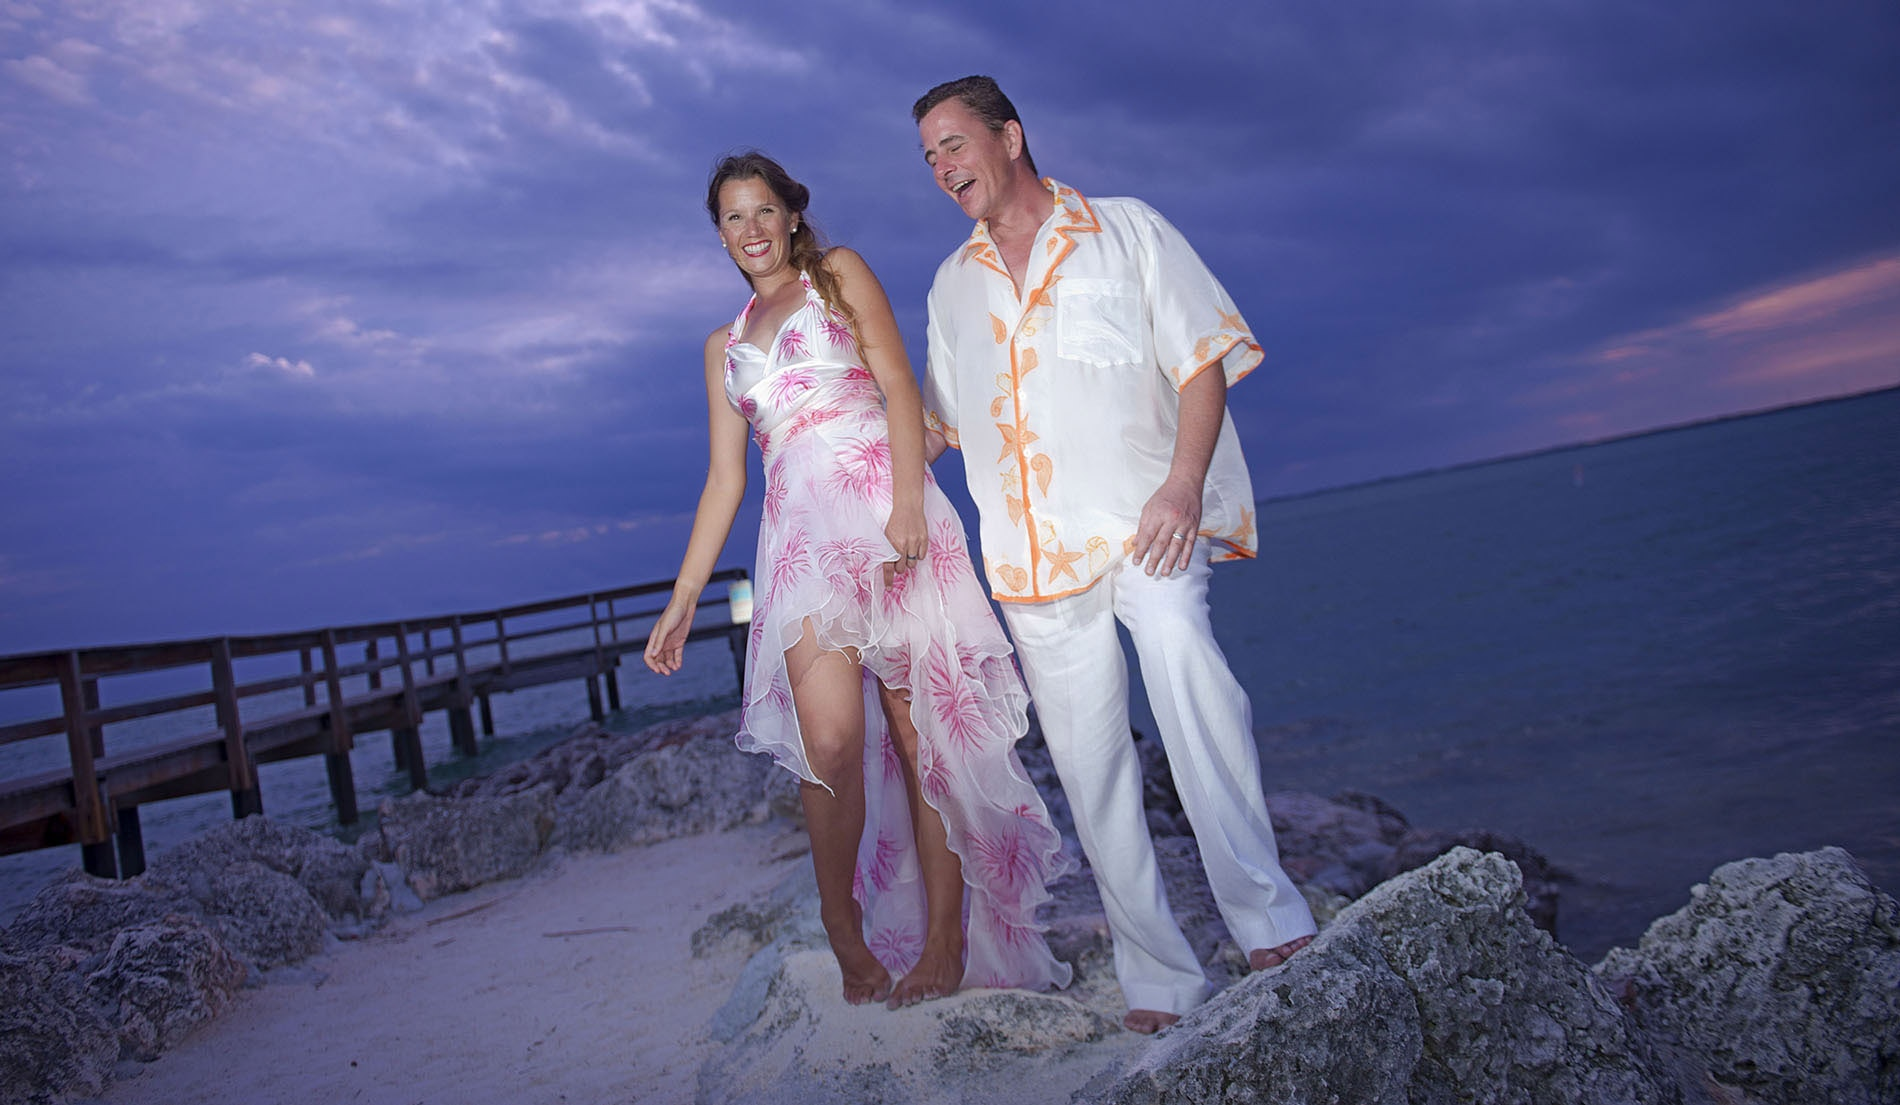 C 011 ALOHA SHIRTS LOOK 4 WITH BRIDE PERFECT BEACH WEDDING ATTIRE GROOM GROOMSMEN COMPLIMENTARY COLOR PALETTEDSC 0687 - mens beach wedding attire pictures